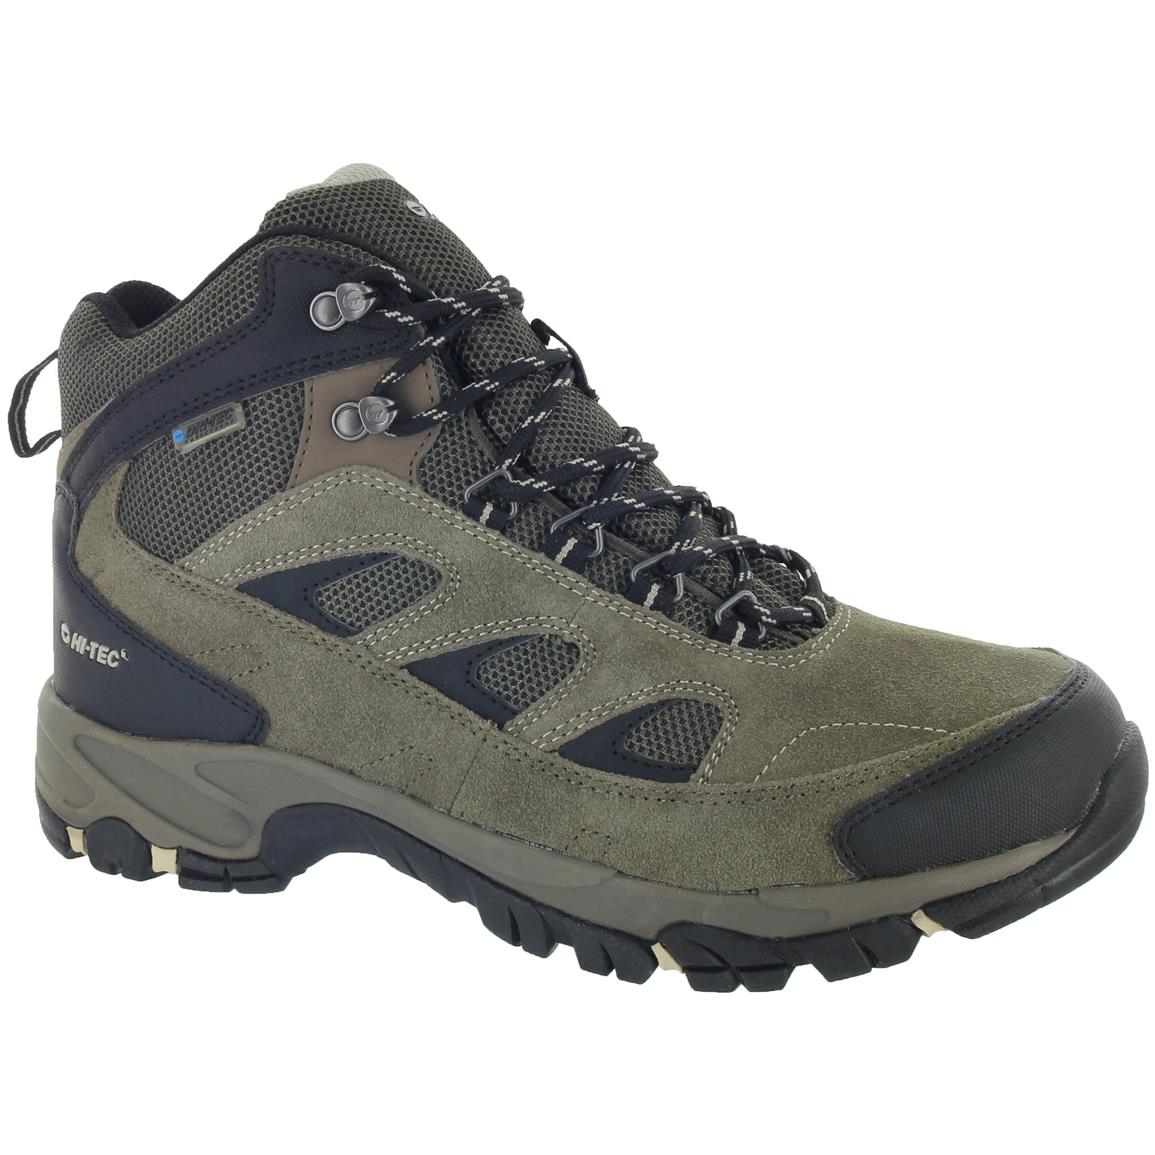 Hi-Tec Logan Men's Hiking Boots, Waterproof, Smoky Brown / Olive